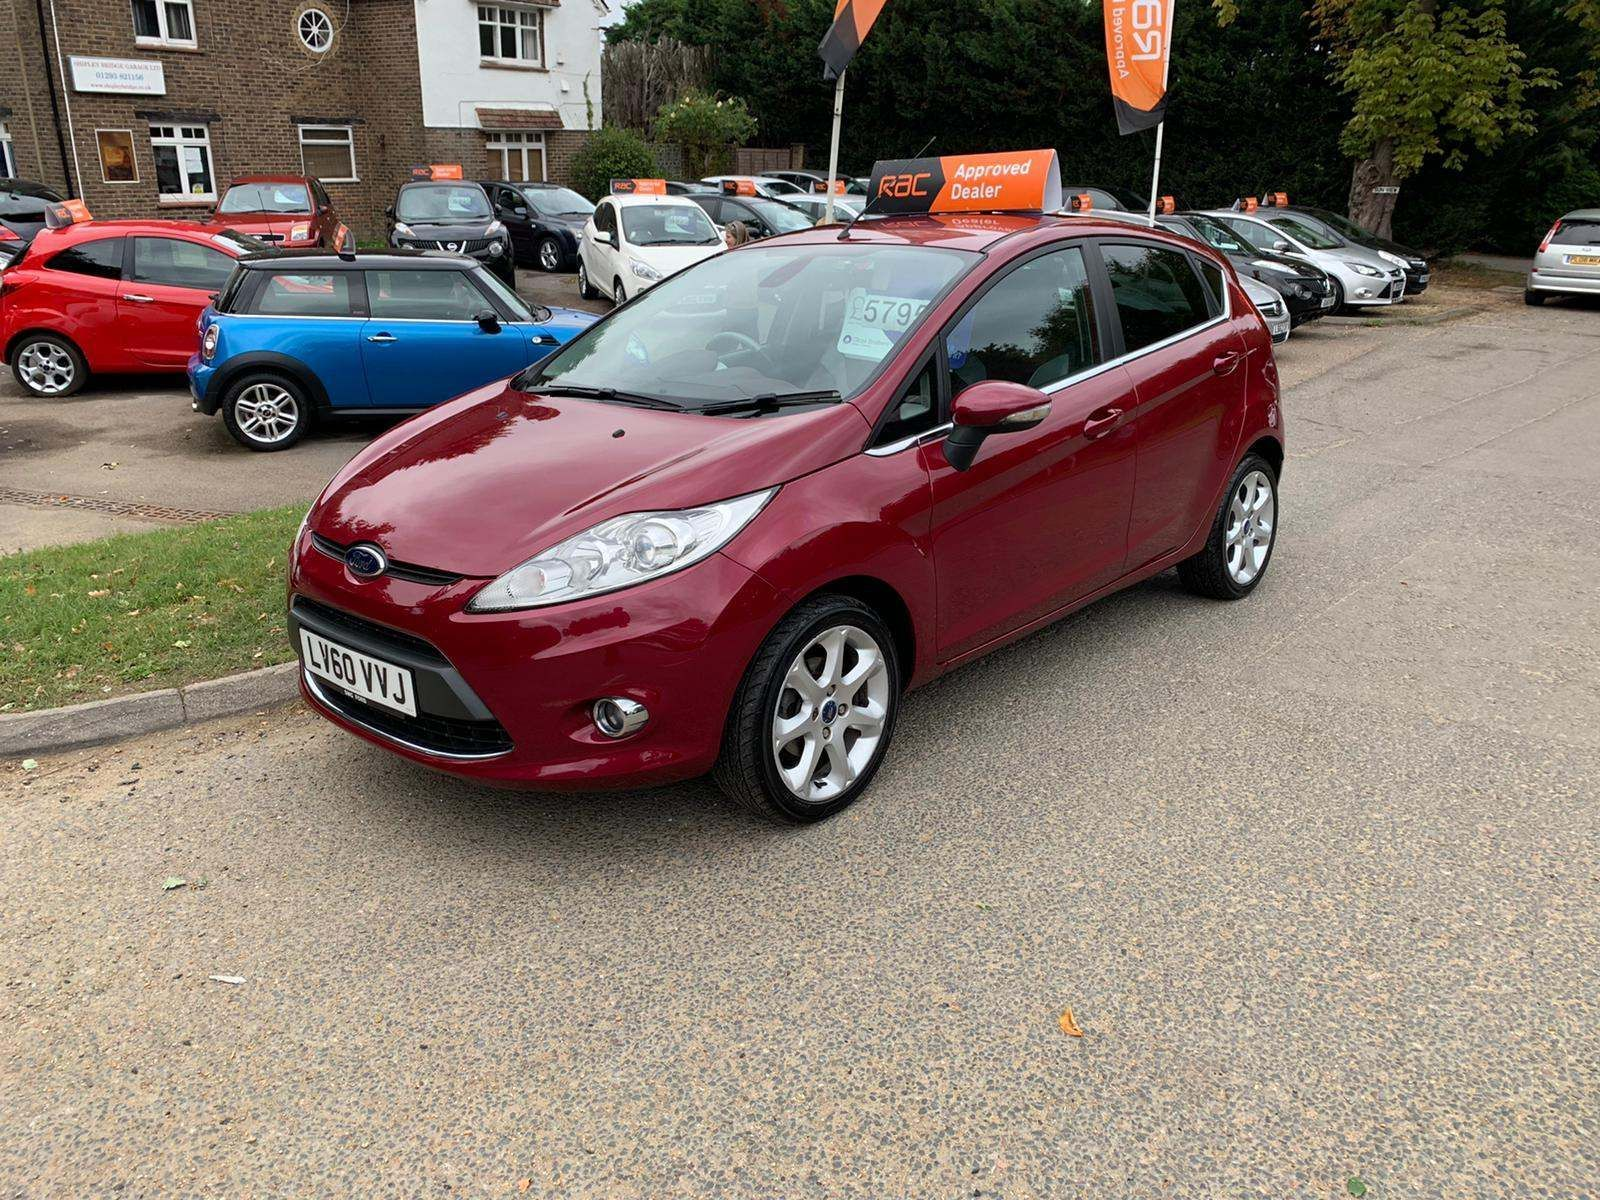 Used Ford Fiesta for sale